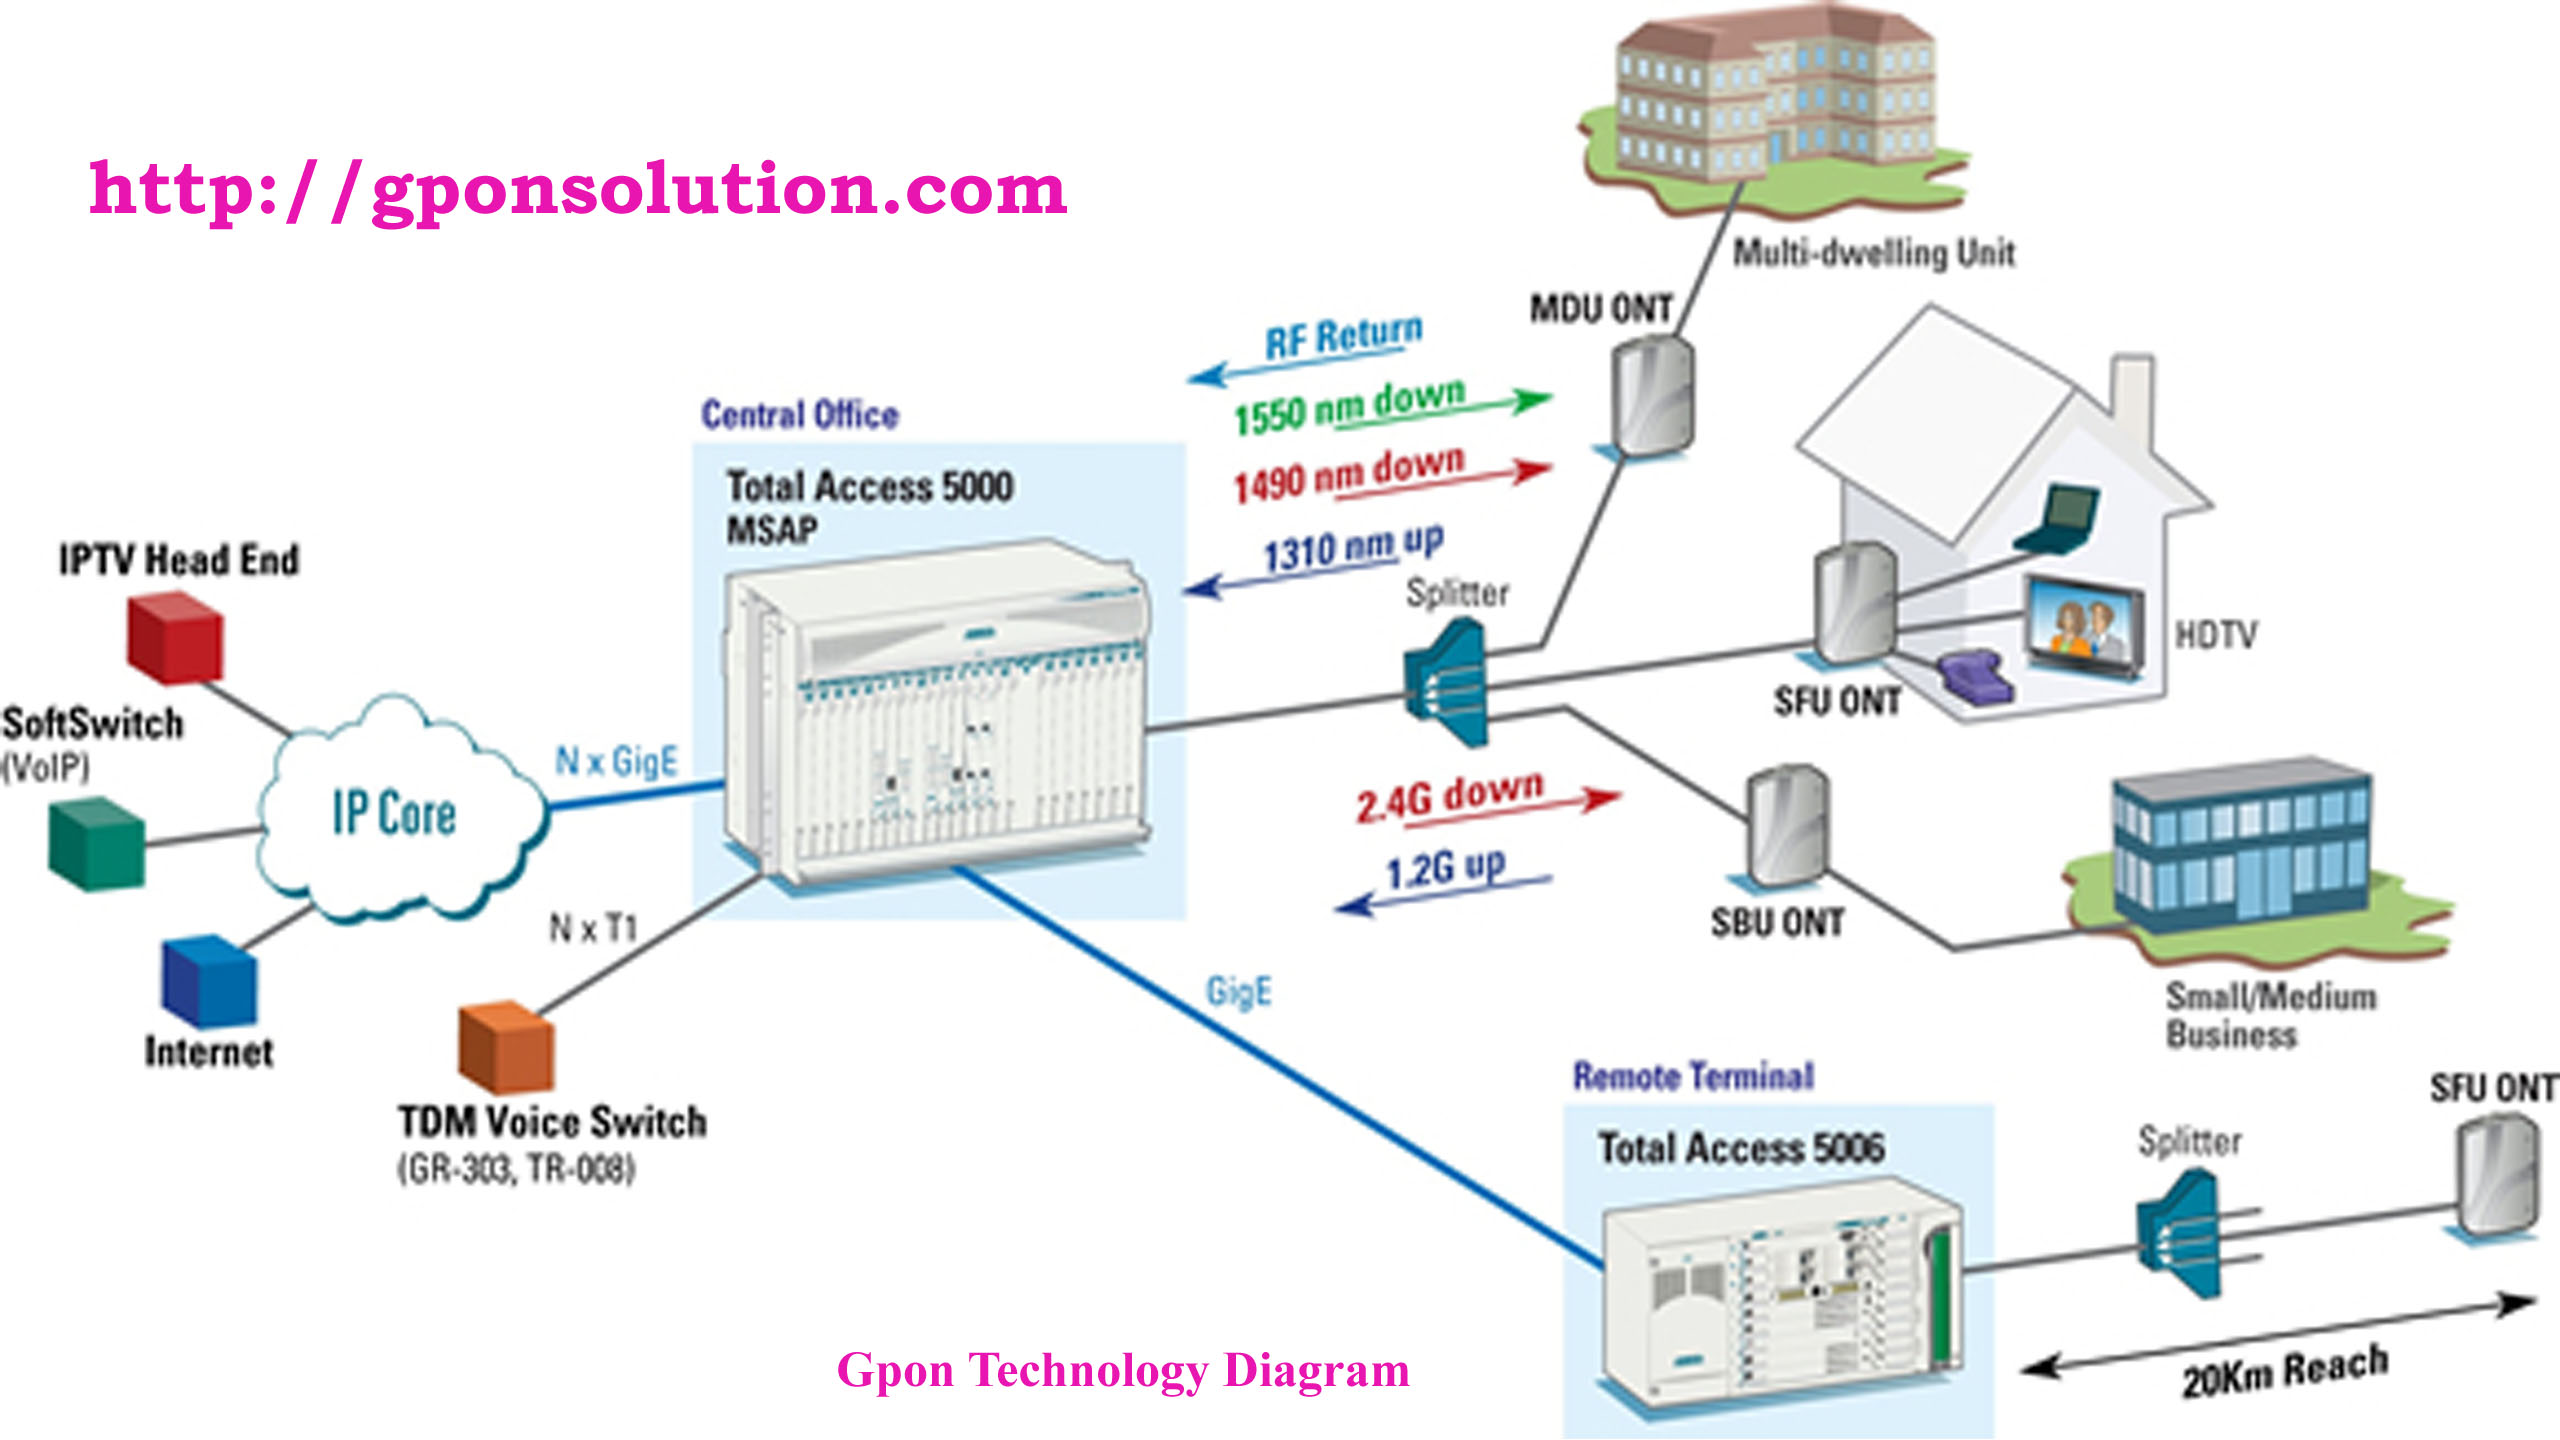 GPON Technology Diagram